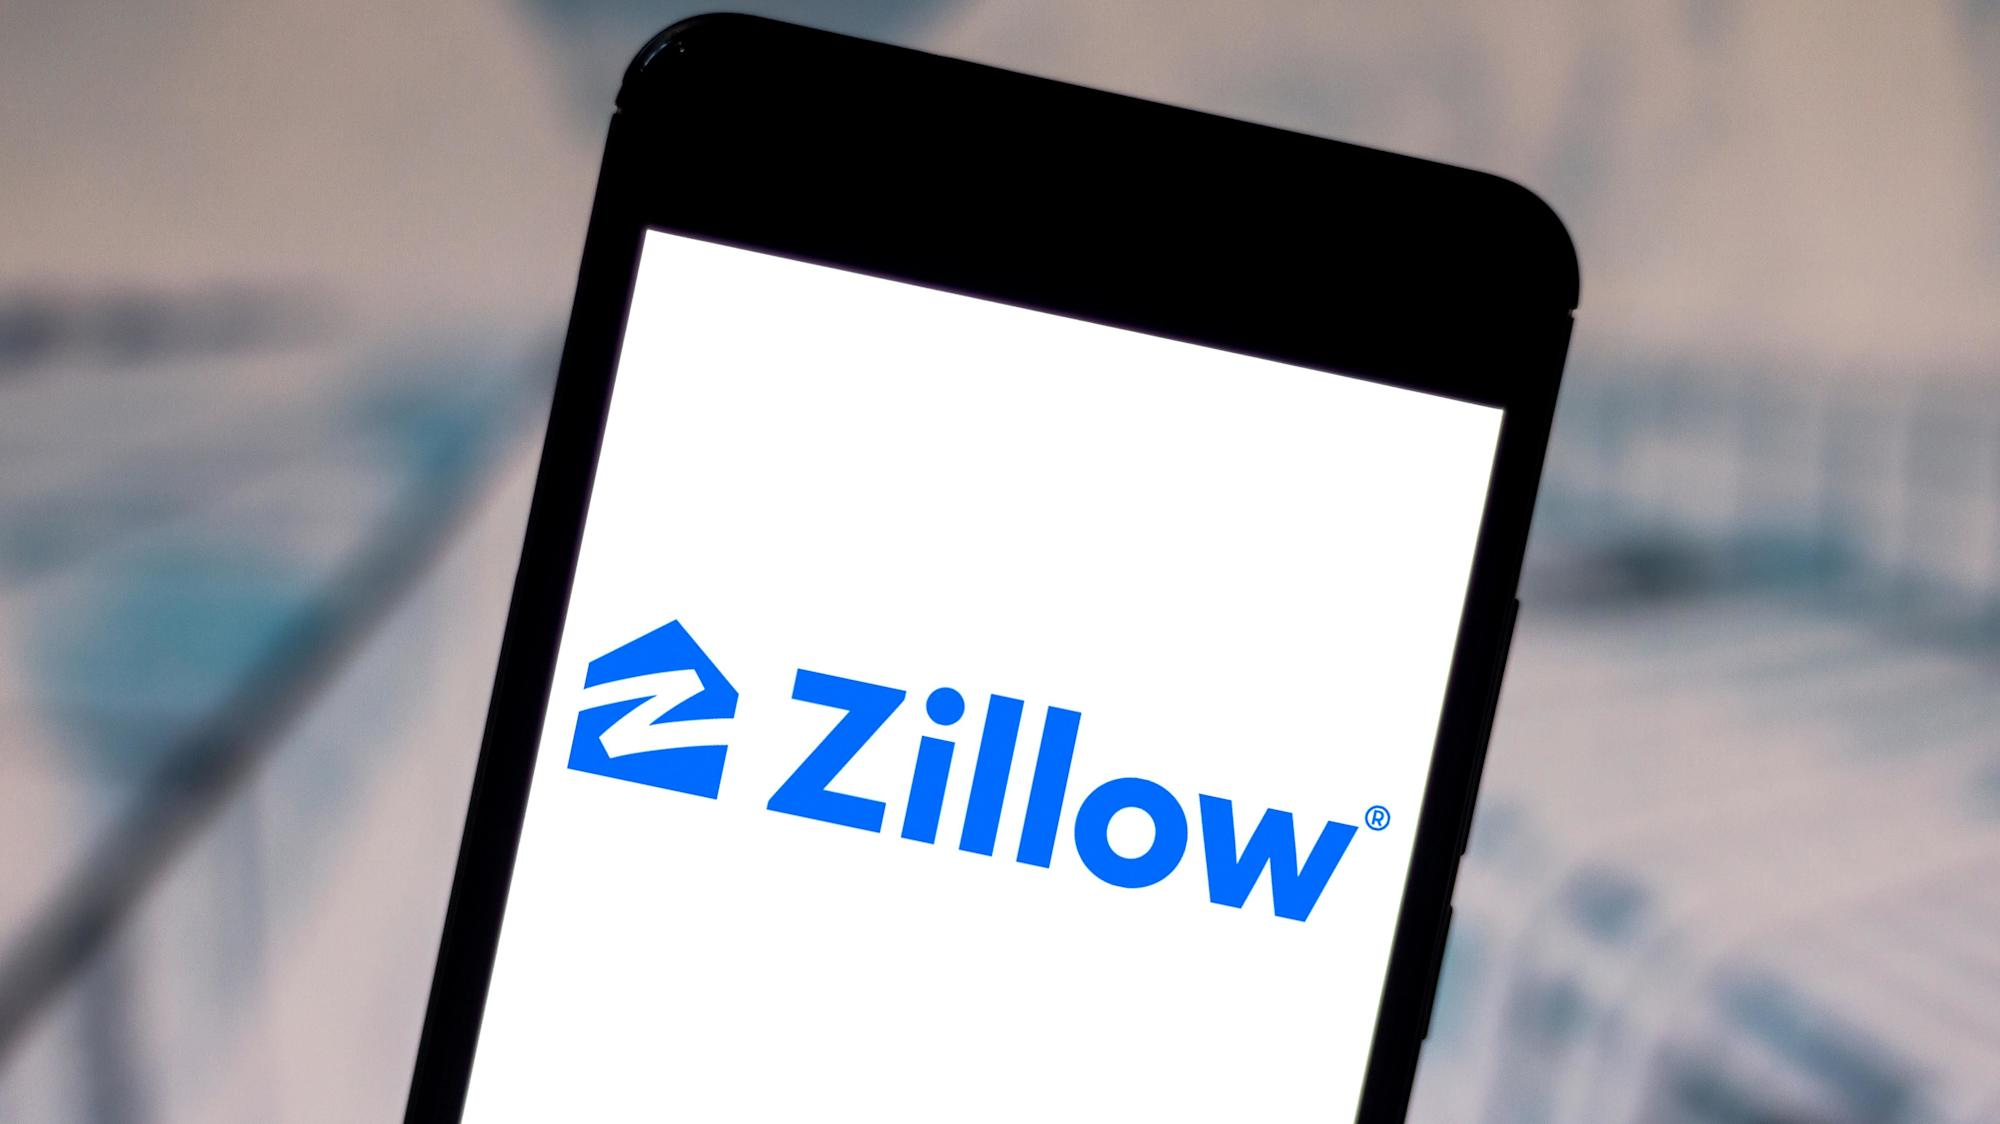 Zillow up in after-hours trading after posting quarterly earnings - Yahoo Finance